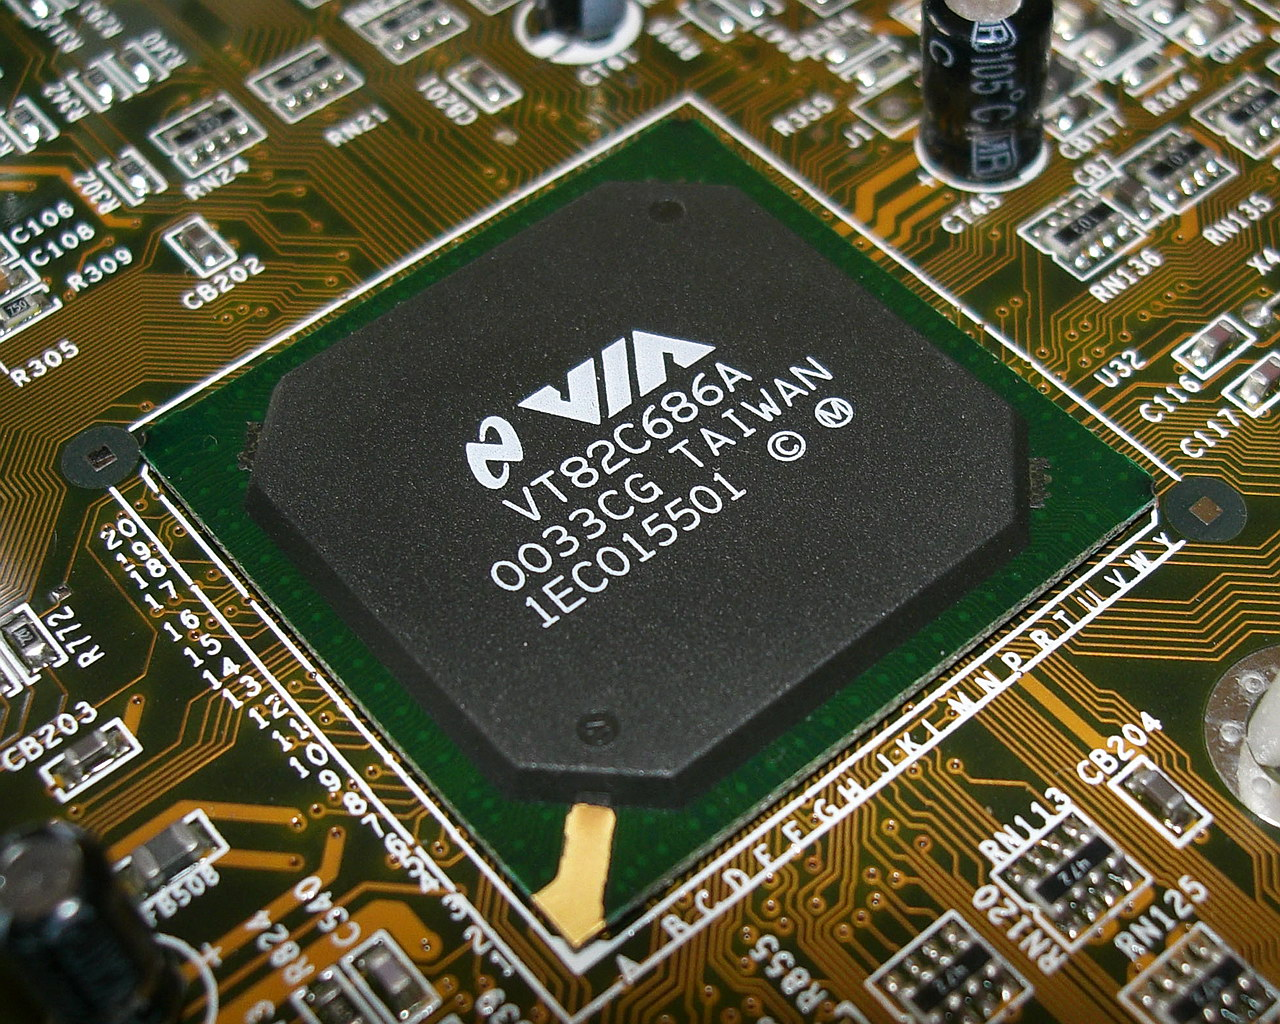 VIA's P4X333 chipset - The Tech Report - Page 1